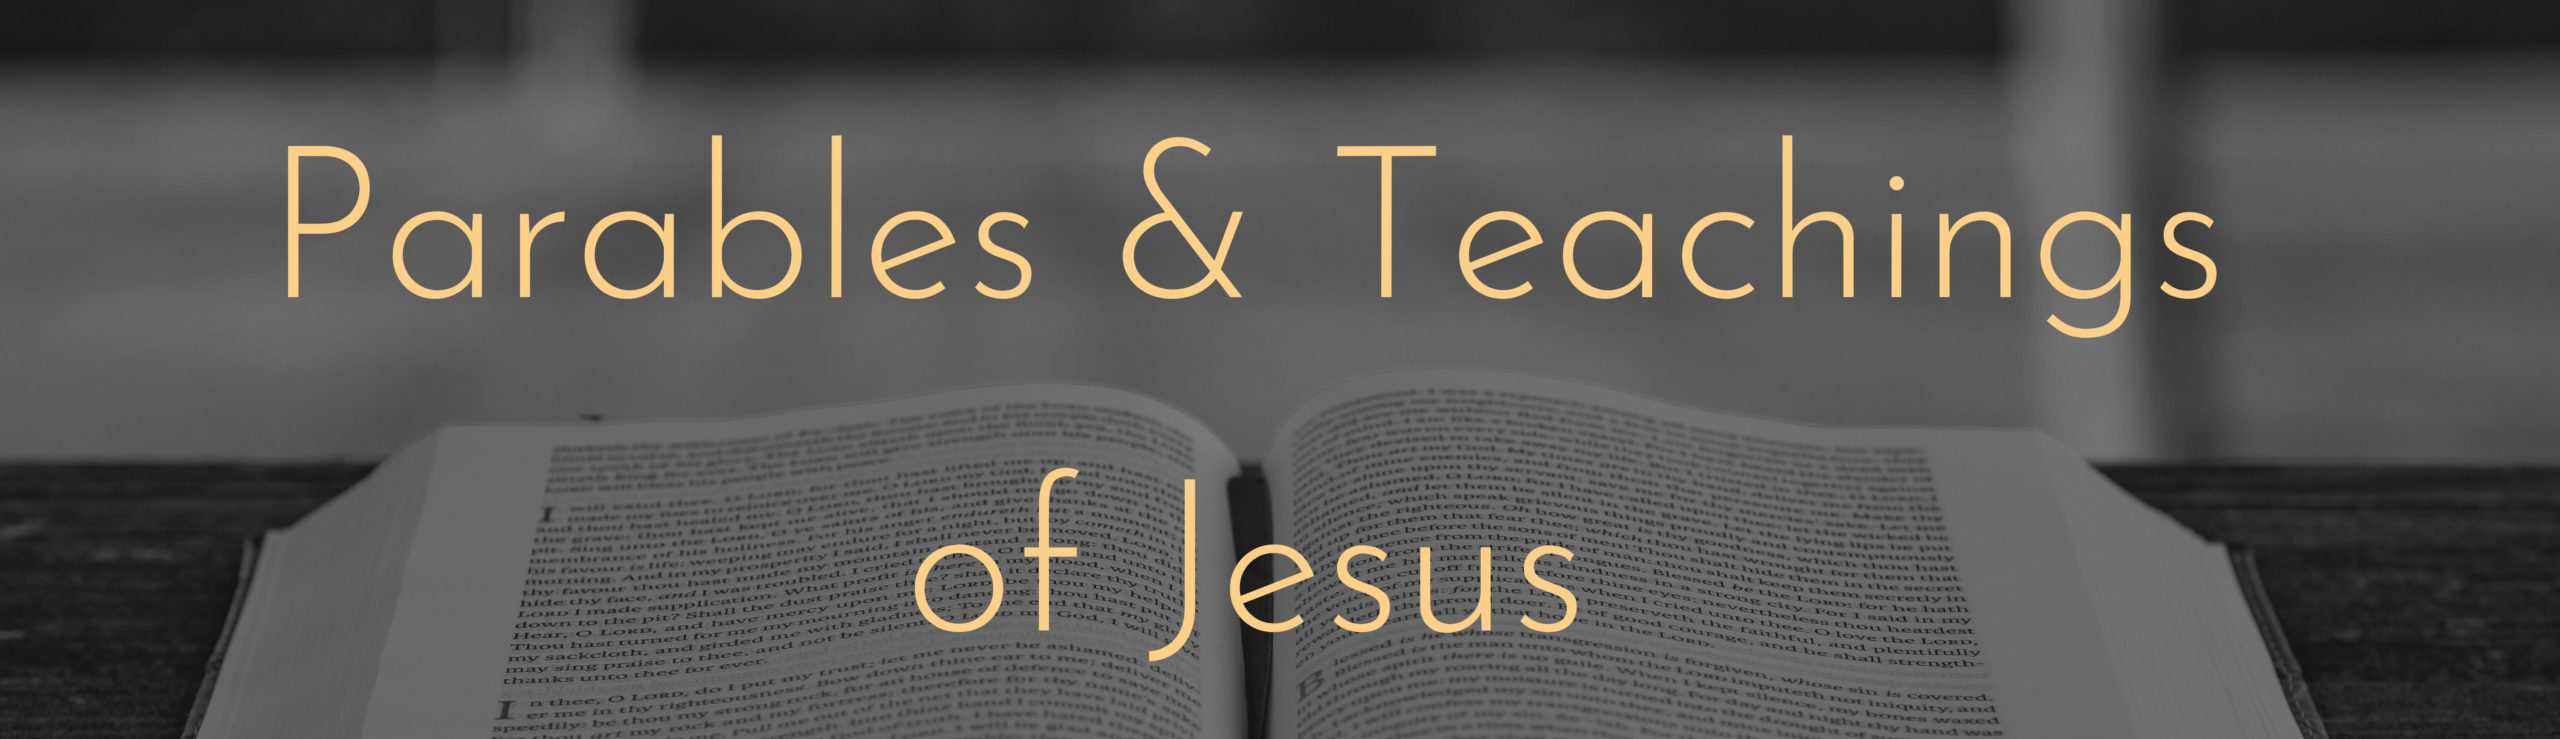 parables and teachingsbanner